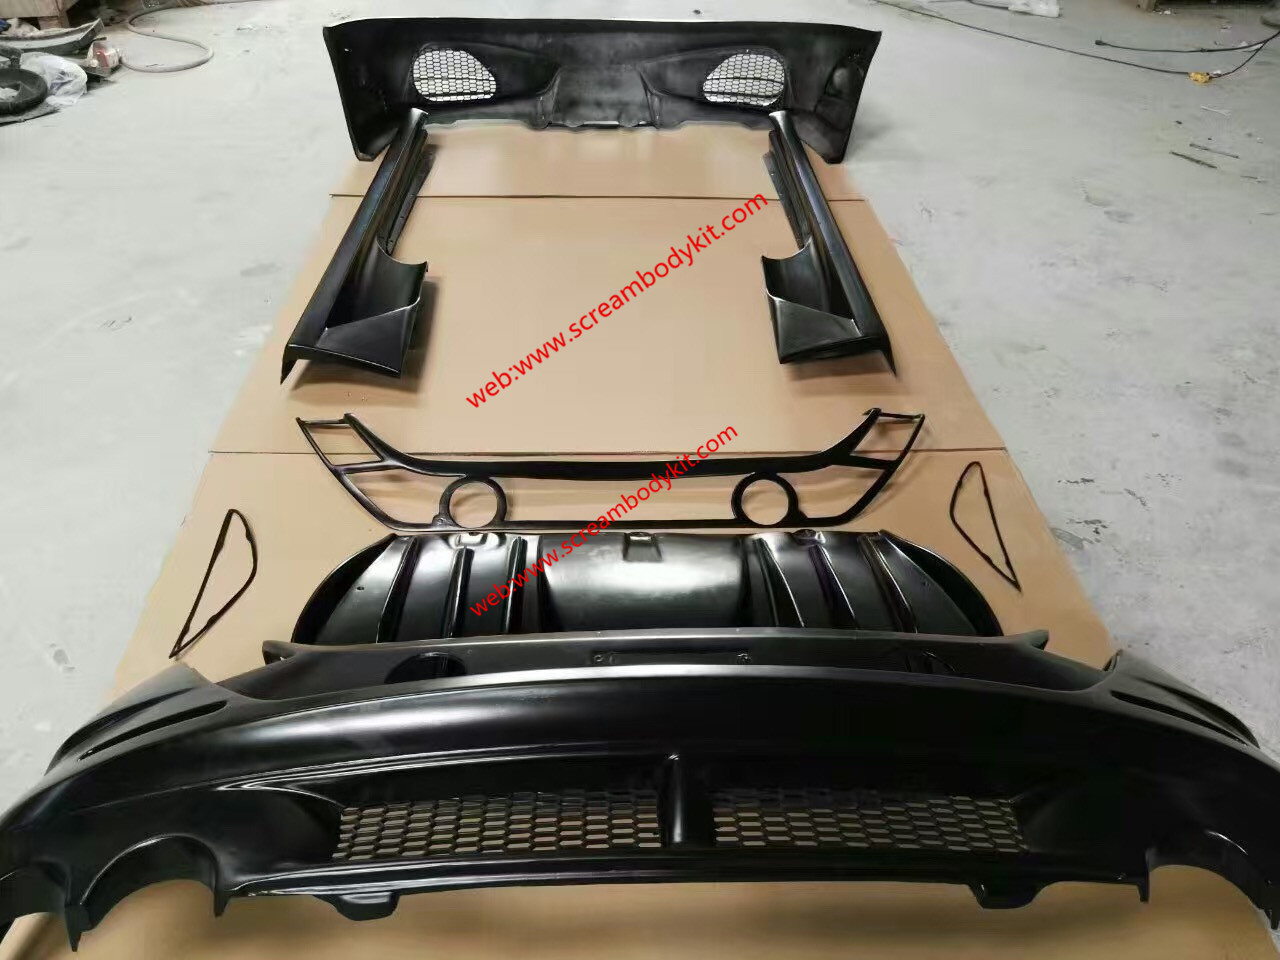 Ferrari F430 update ASI wide body kit  carbon fiber wing